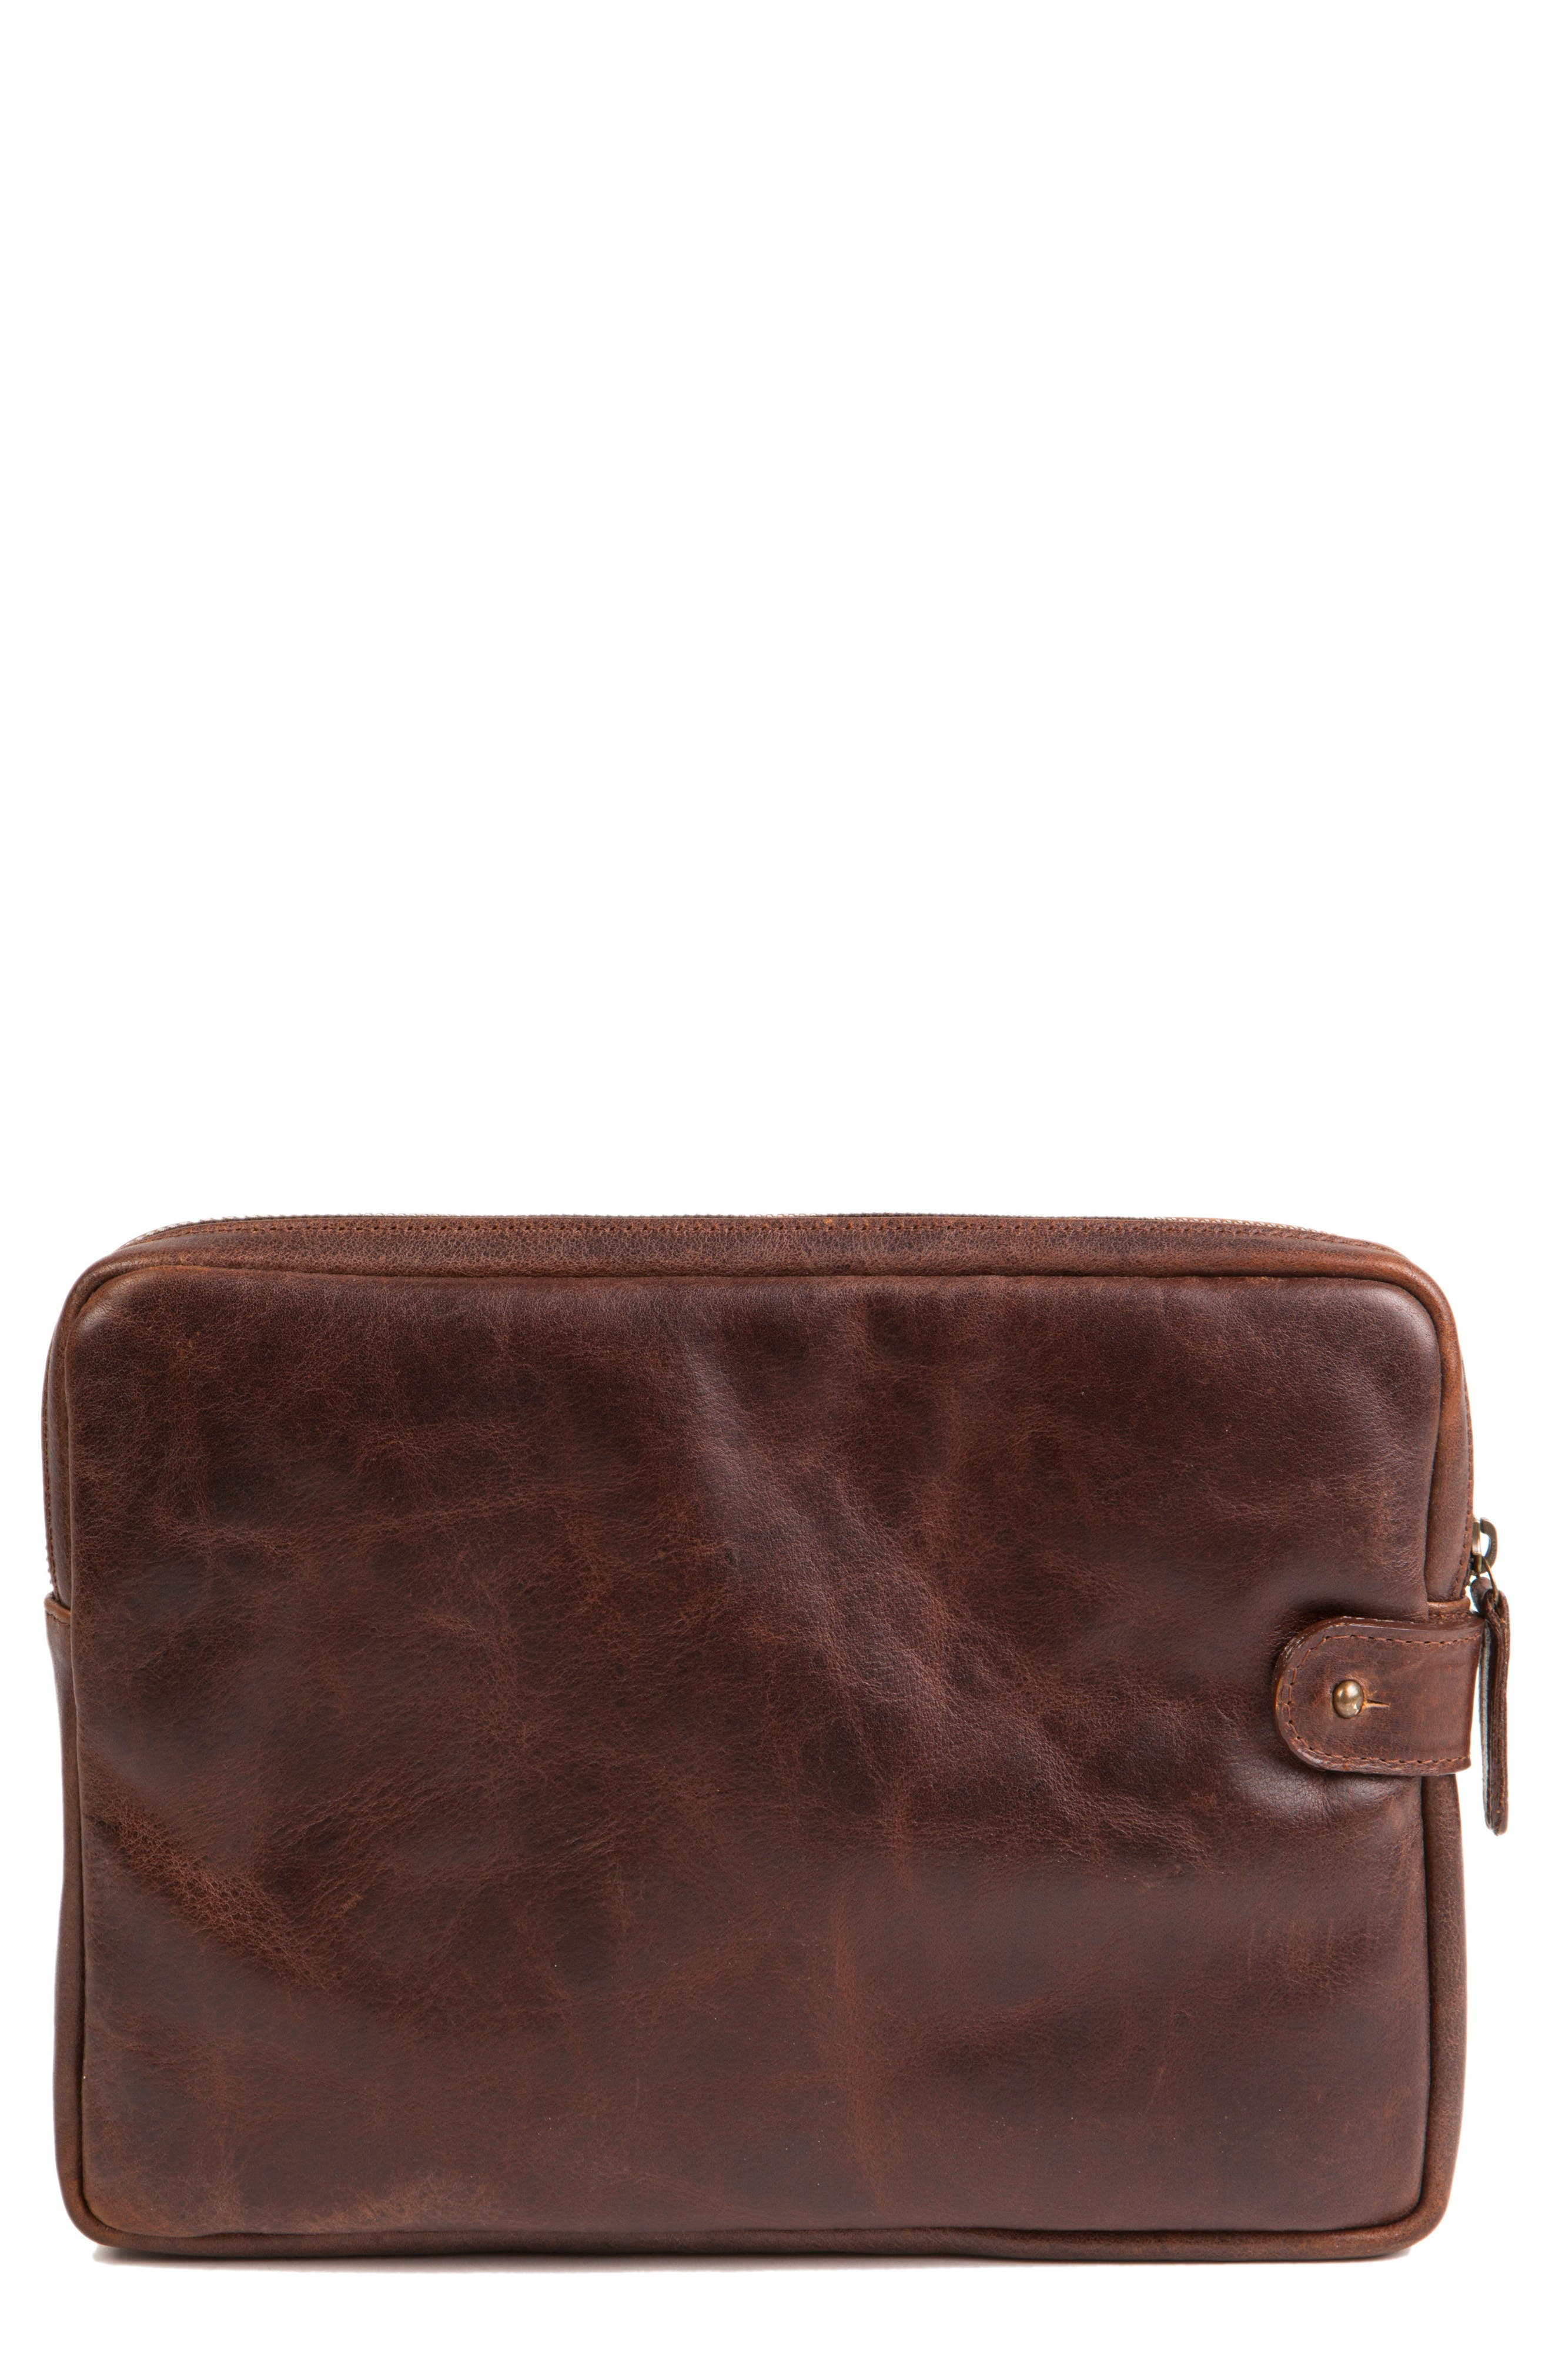 Leather Tablet Sleeve,                             Main thumbnail 1, color,                             206